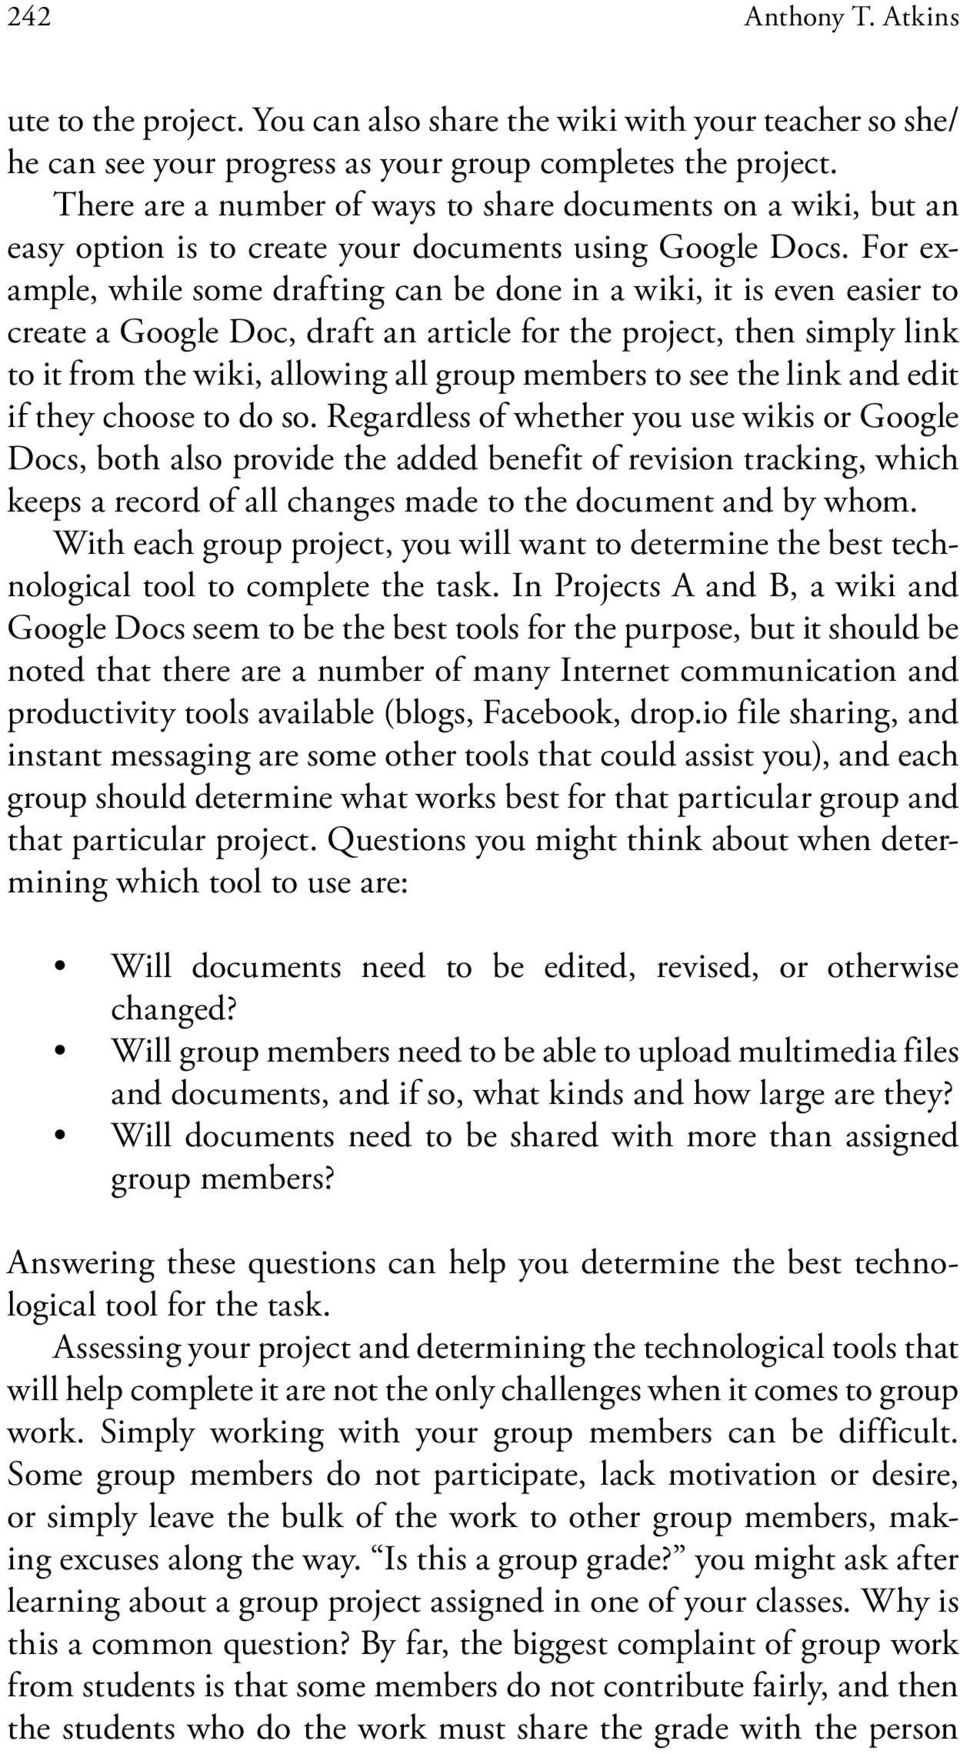 For example, while some drafting can be done in a wiki, it is even easier to create a Google Doc, draft an article for the project, then simply link to it from the wiki, allowing all group members to